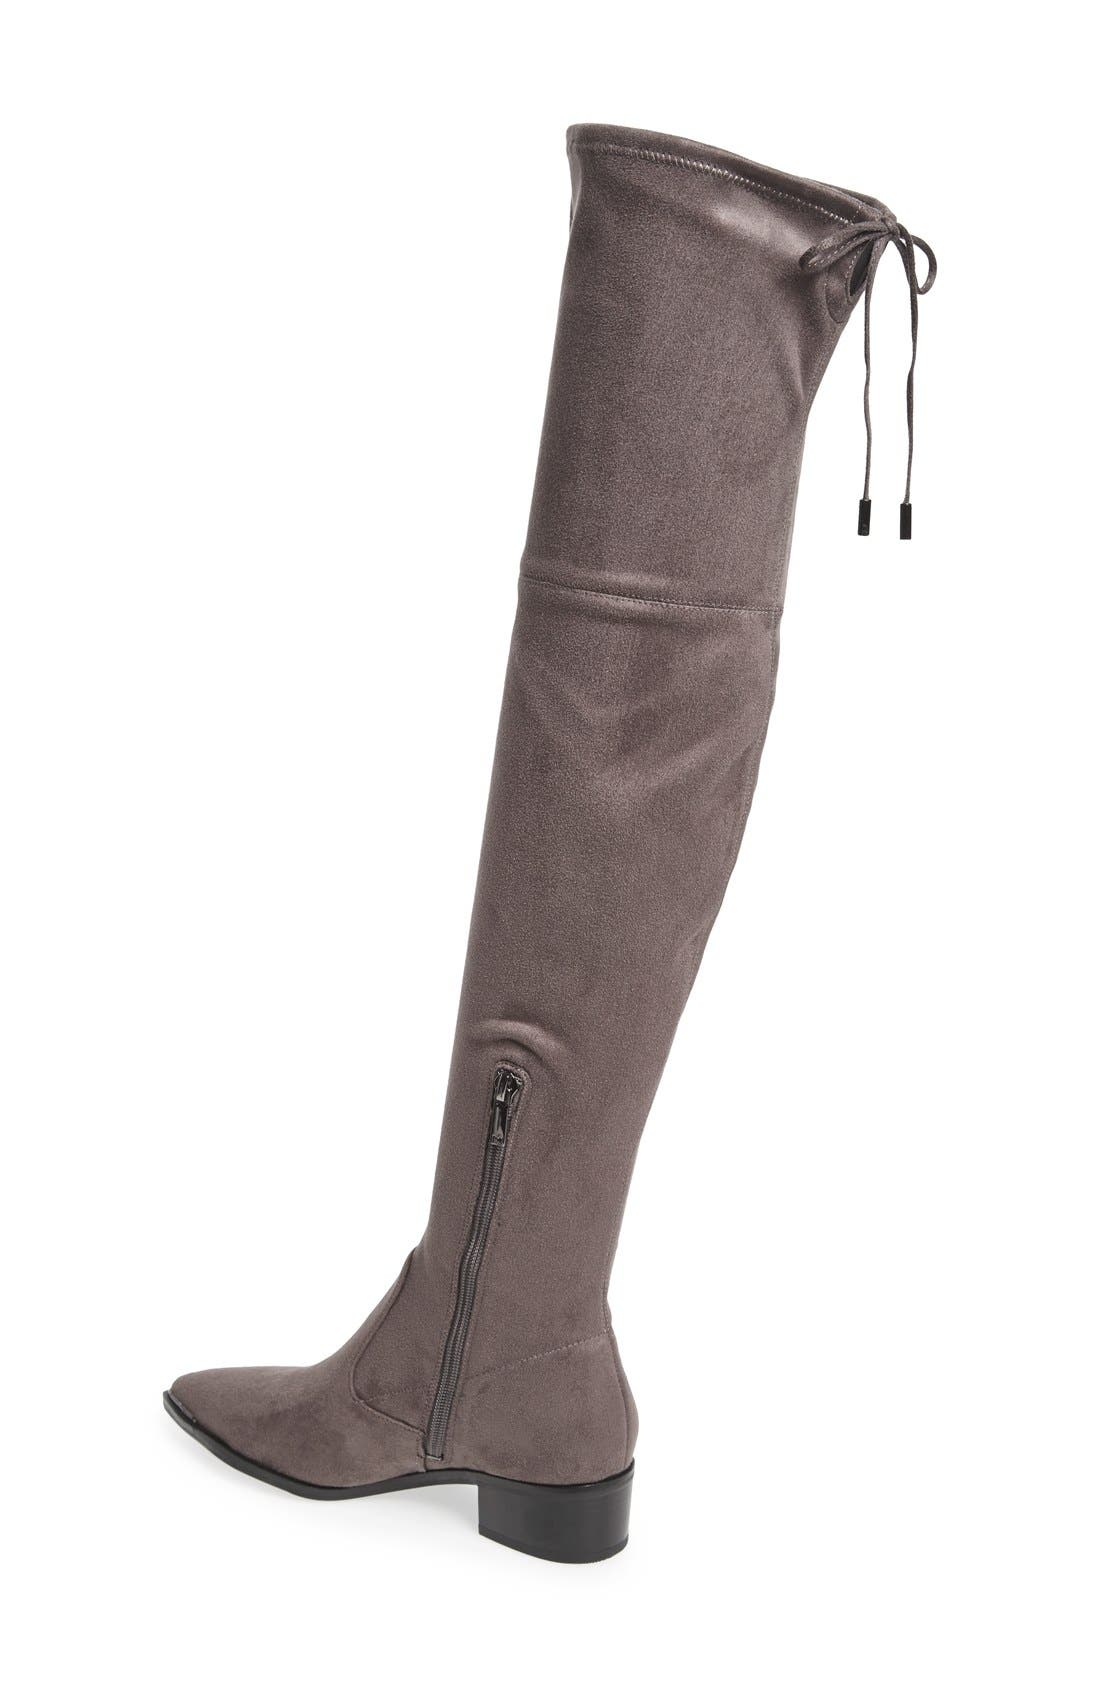 Yenna Over the Knee Boot,                             Alternate thumbnail 2, color,                             Grey Stretch Fabric